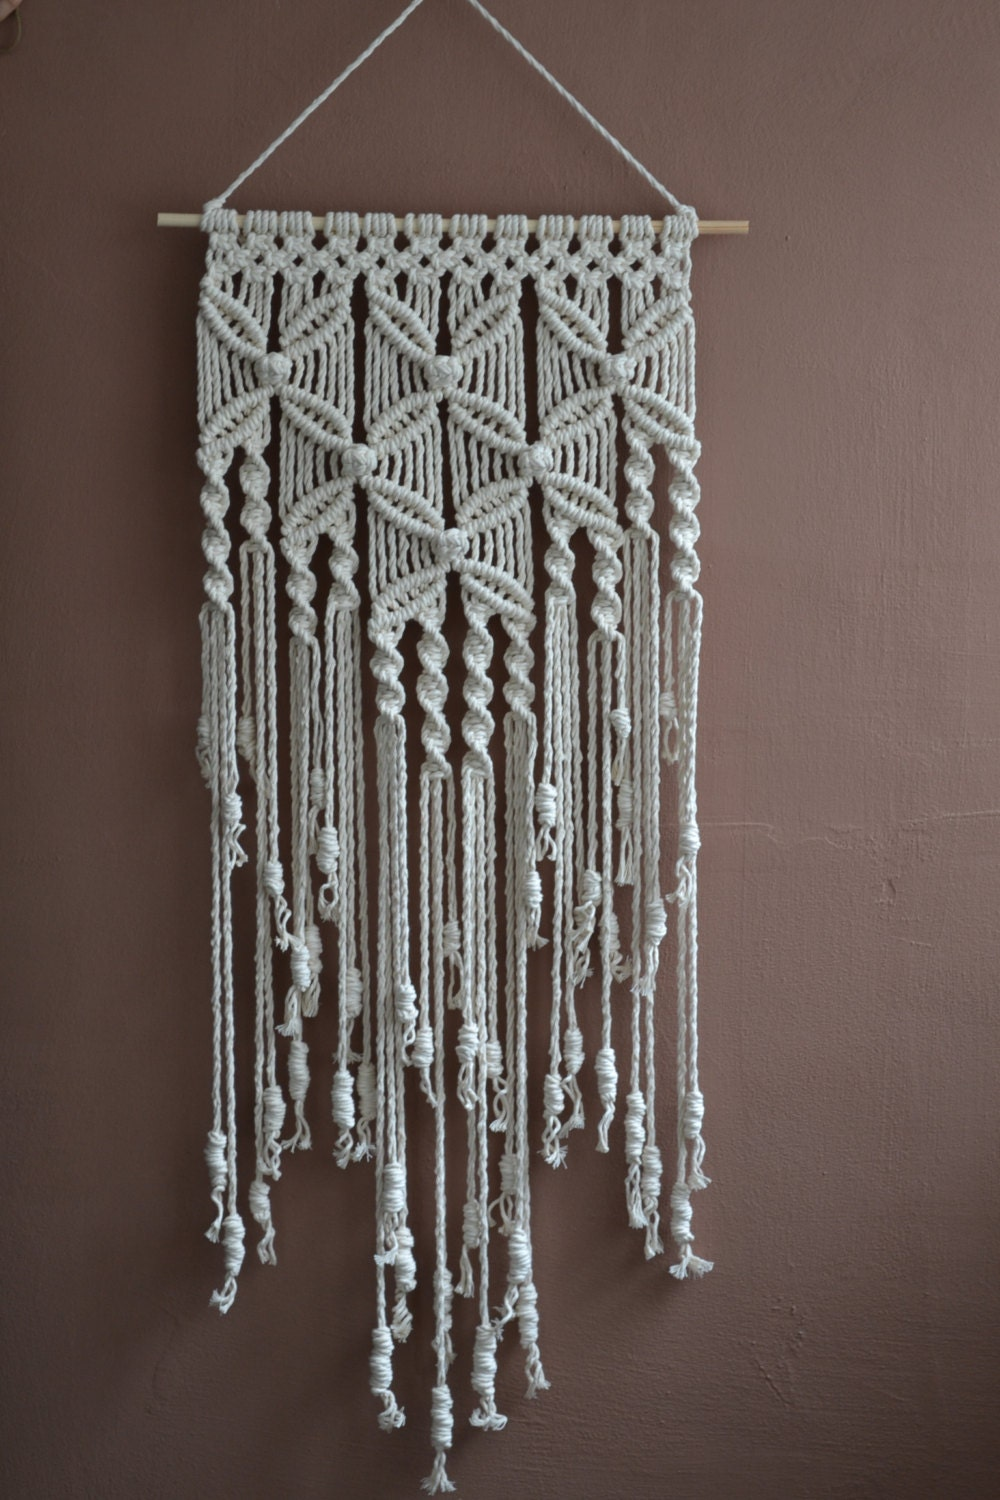 Home Decorative Modern Macrame Wall Hanging B01n109wvh